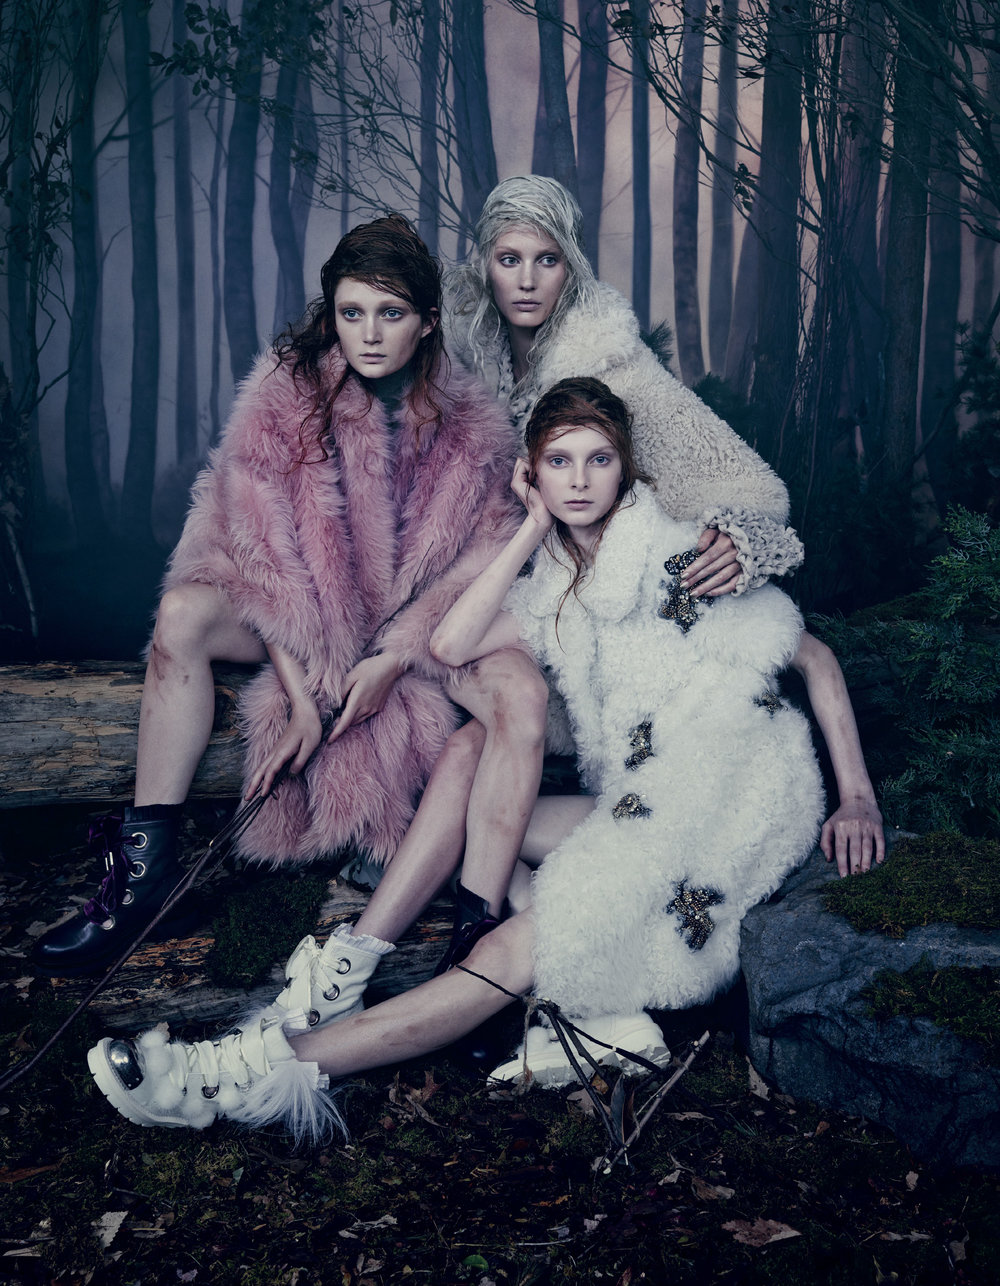 Giovanna-Battaglia-Into-The-Woods-Vogue-Japan-Emma-Summerton-02.jpg